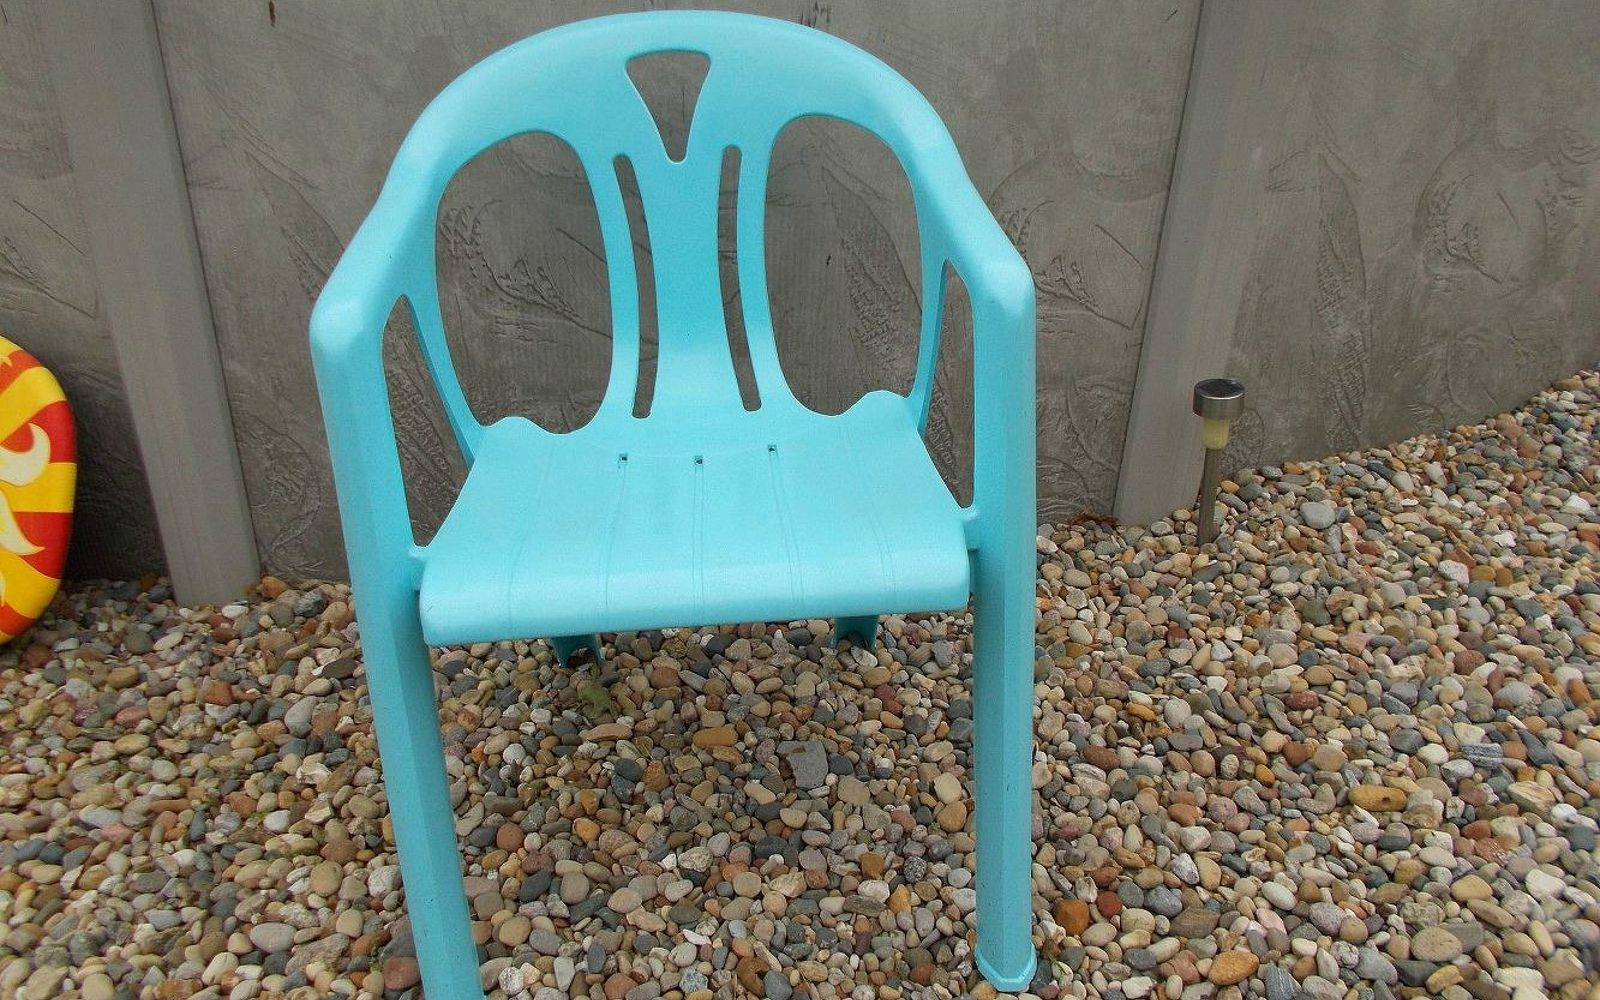 s 12 pool chair ideas we never would have thought of, painted furniture, pool designs, Get trendy with a turquoise paint job